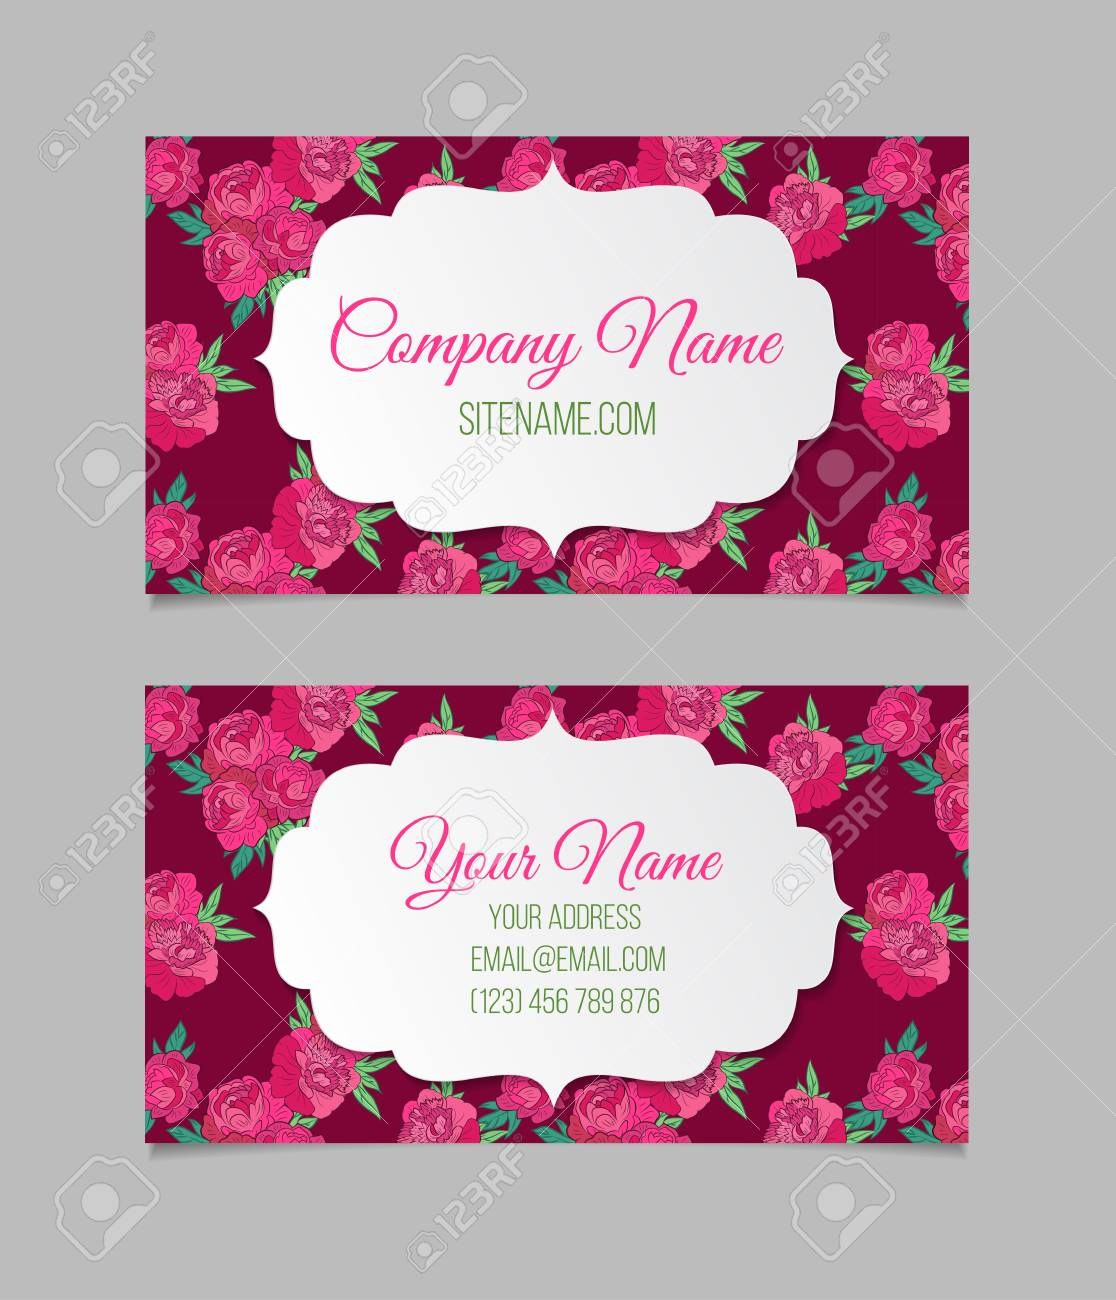 Double sided floral business card template with peonies royalty free double sided floral business card template with peonies stock vector 49814631 accmission Choice Image